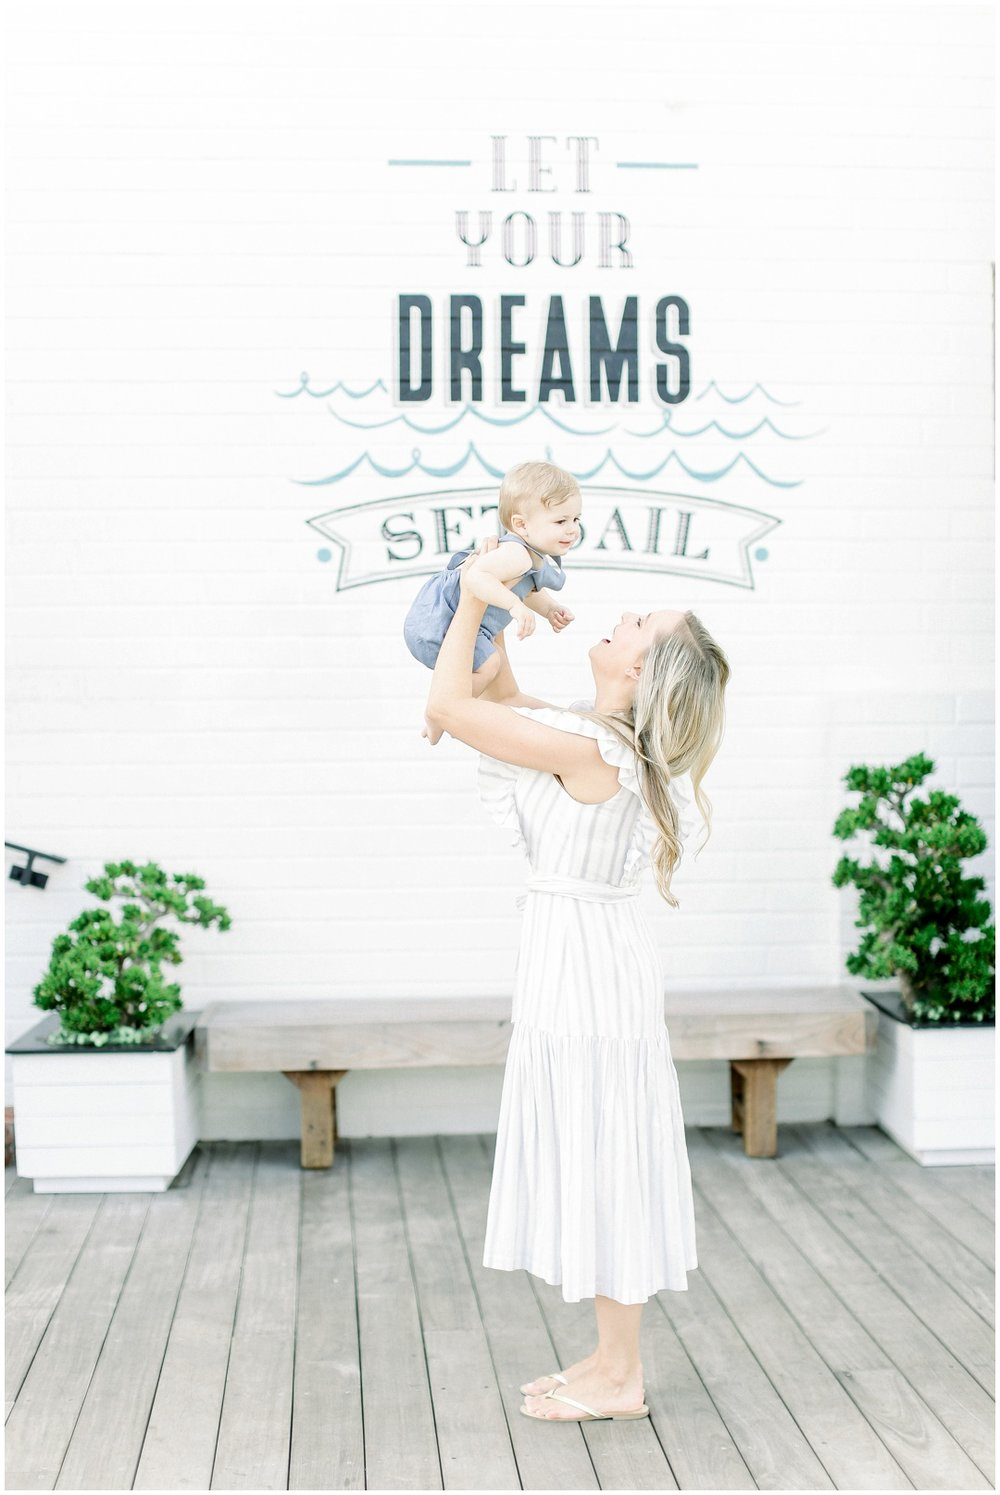 Lido_Marina_Village_Session_Photographer_Newport_Beach_Family_Photographer_Newport_Beach_Newborn_Photographer_Orange_County_Family_Photographer_Cori_Kleckner_Photography_Huntington_Beach_Photographer_Lara_Langford_Family_Session_2652.jpg